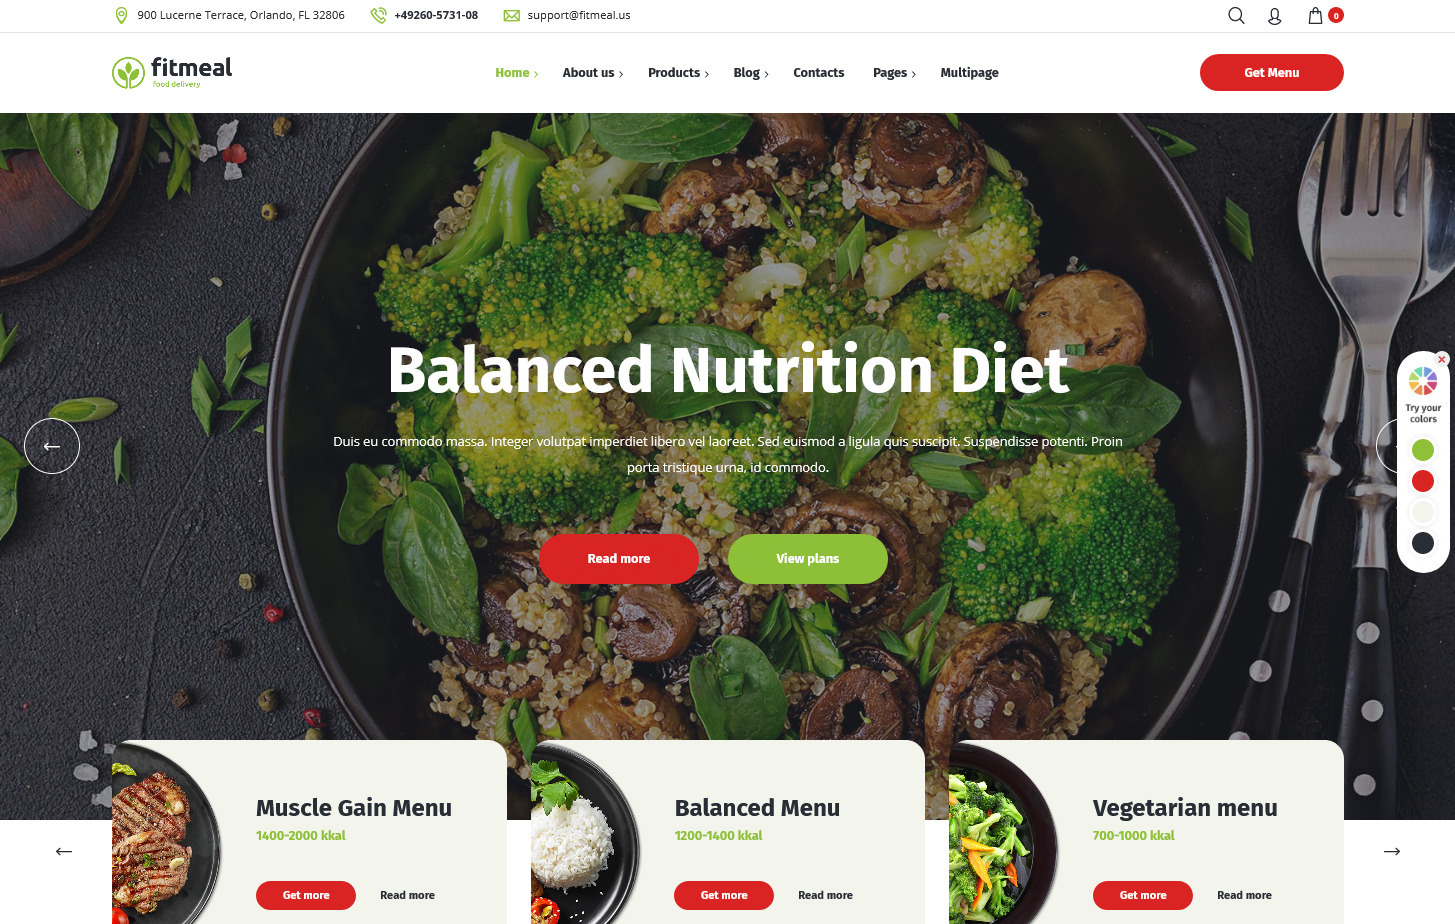 FitMeal – WordPress Theme for Nutritionists and Dieticians